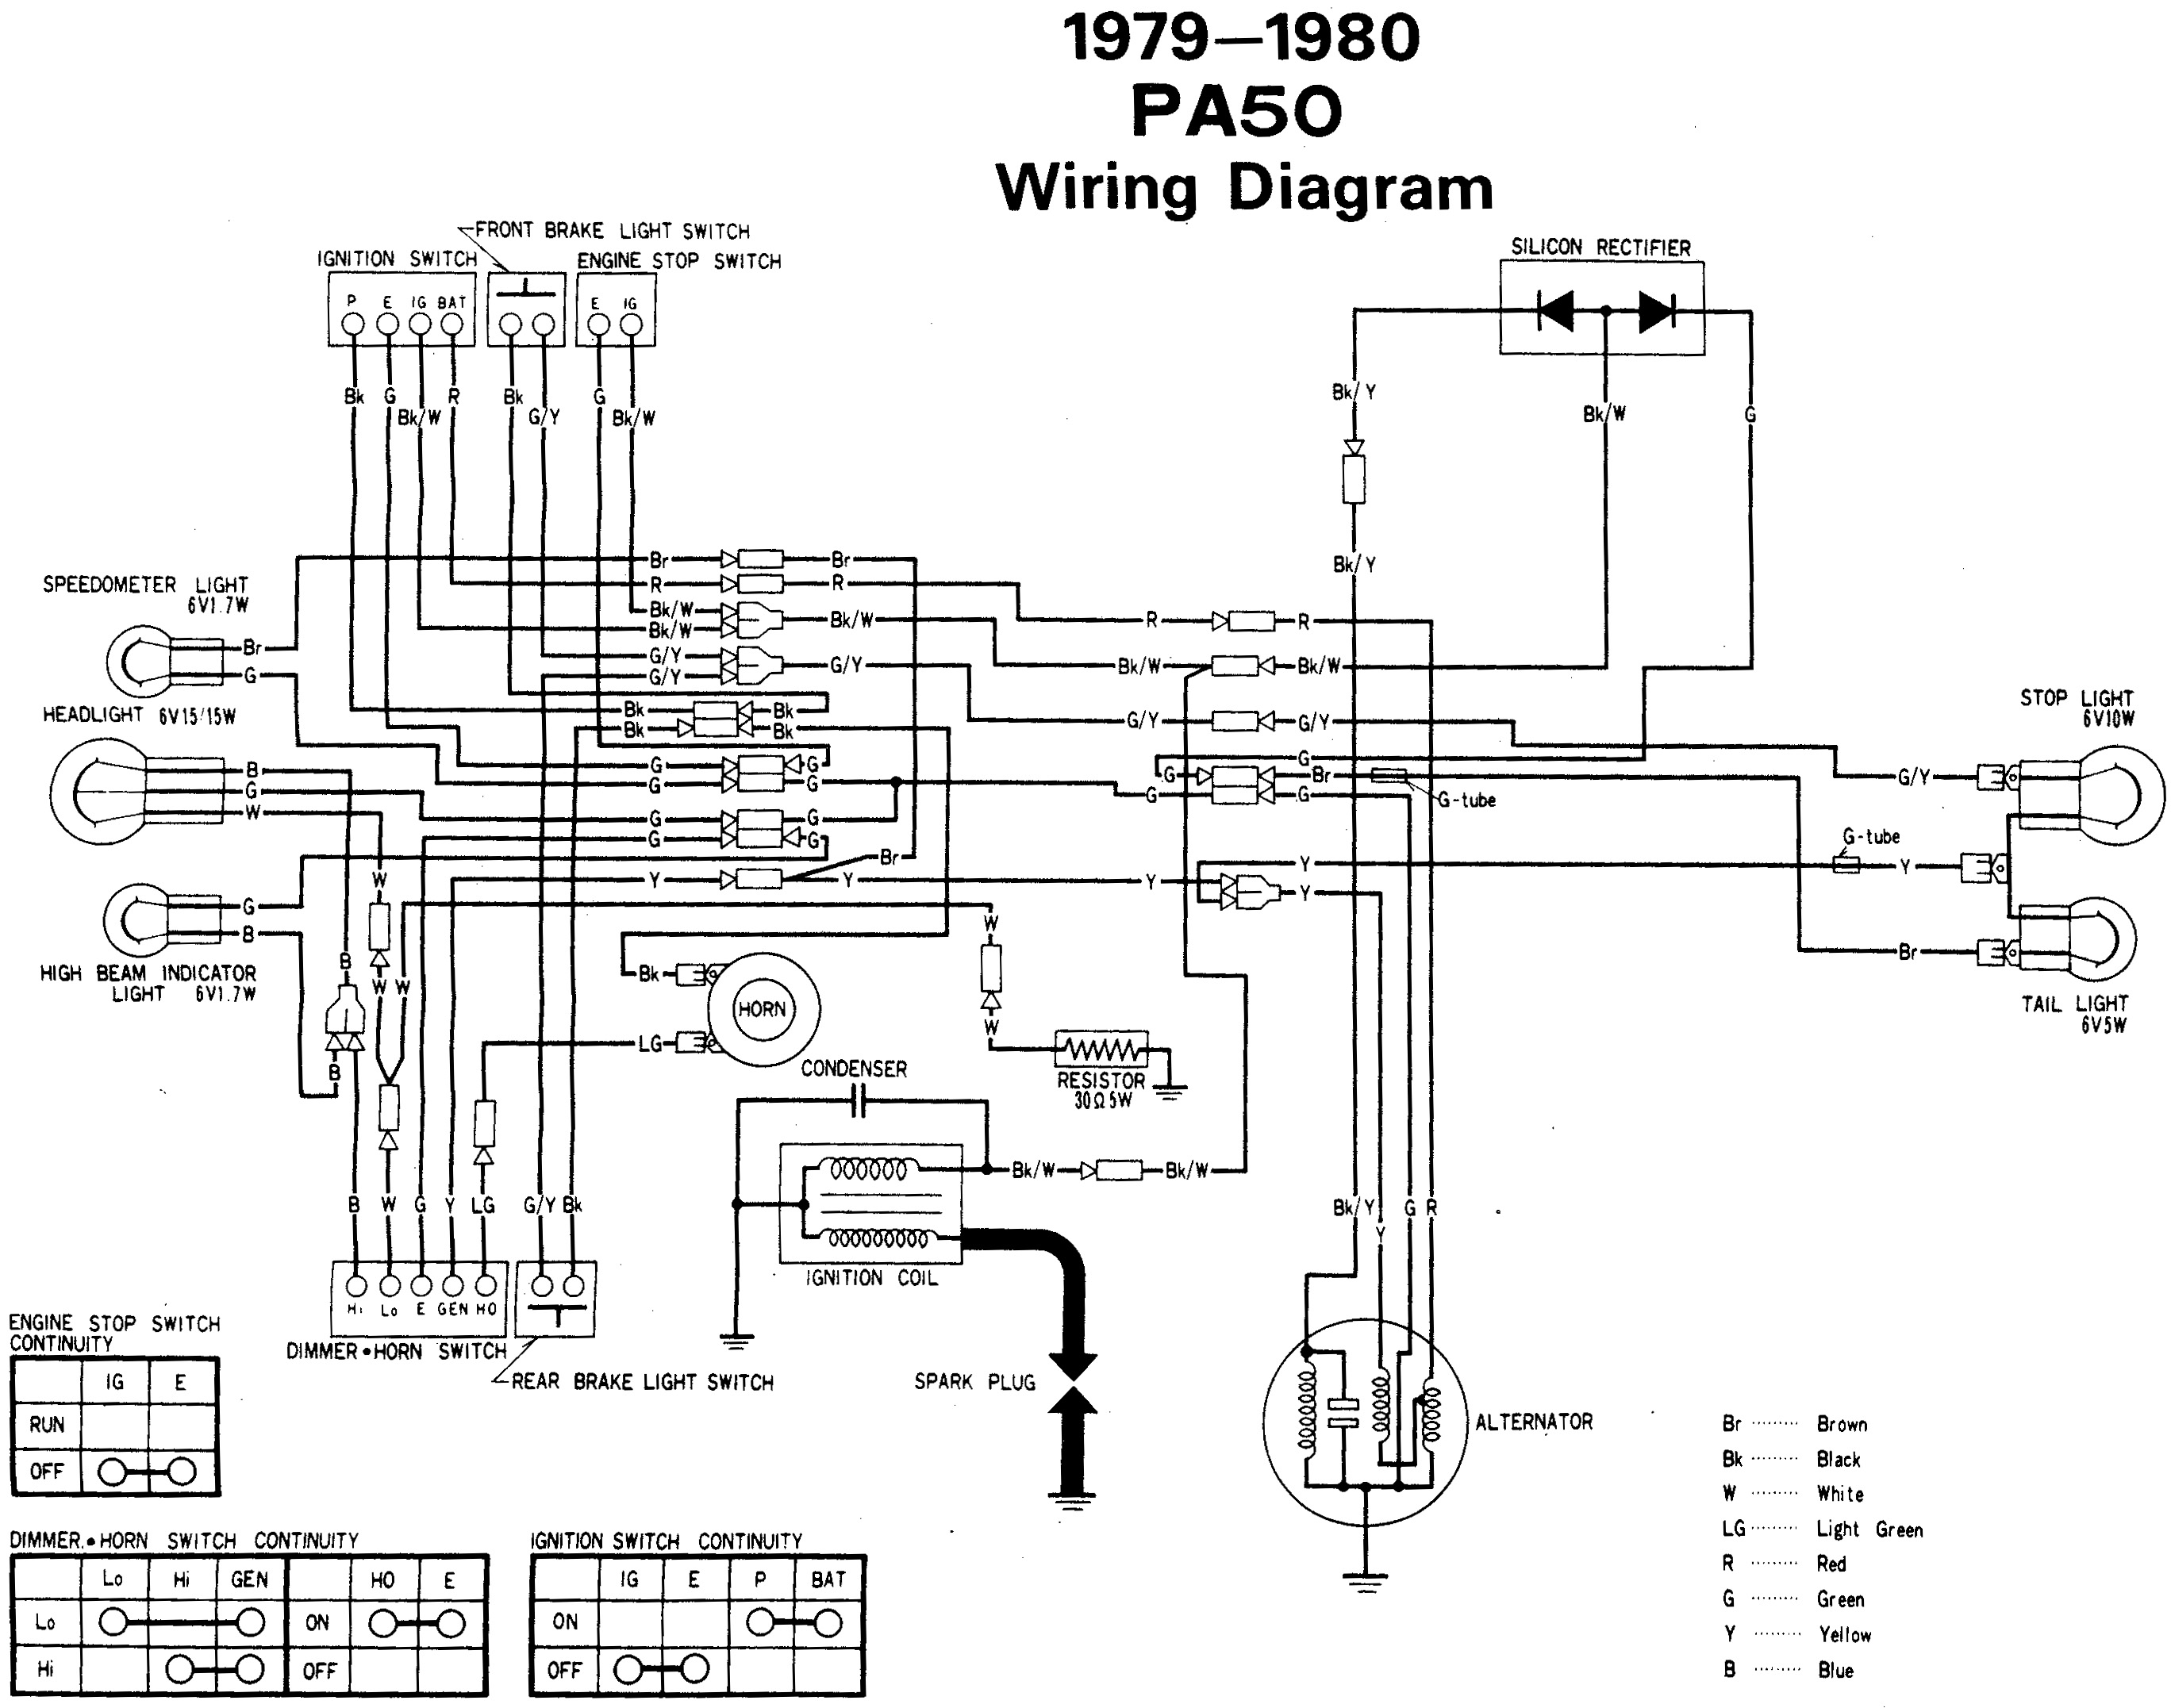 Re: Wiring diagram 1980 Honda PA 50